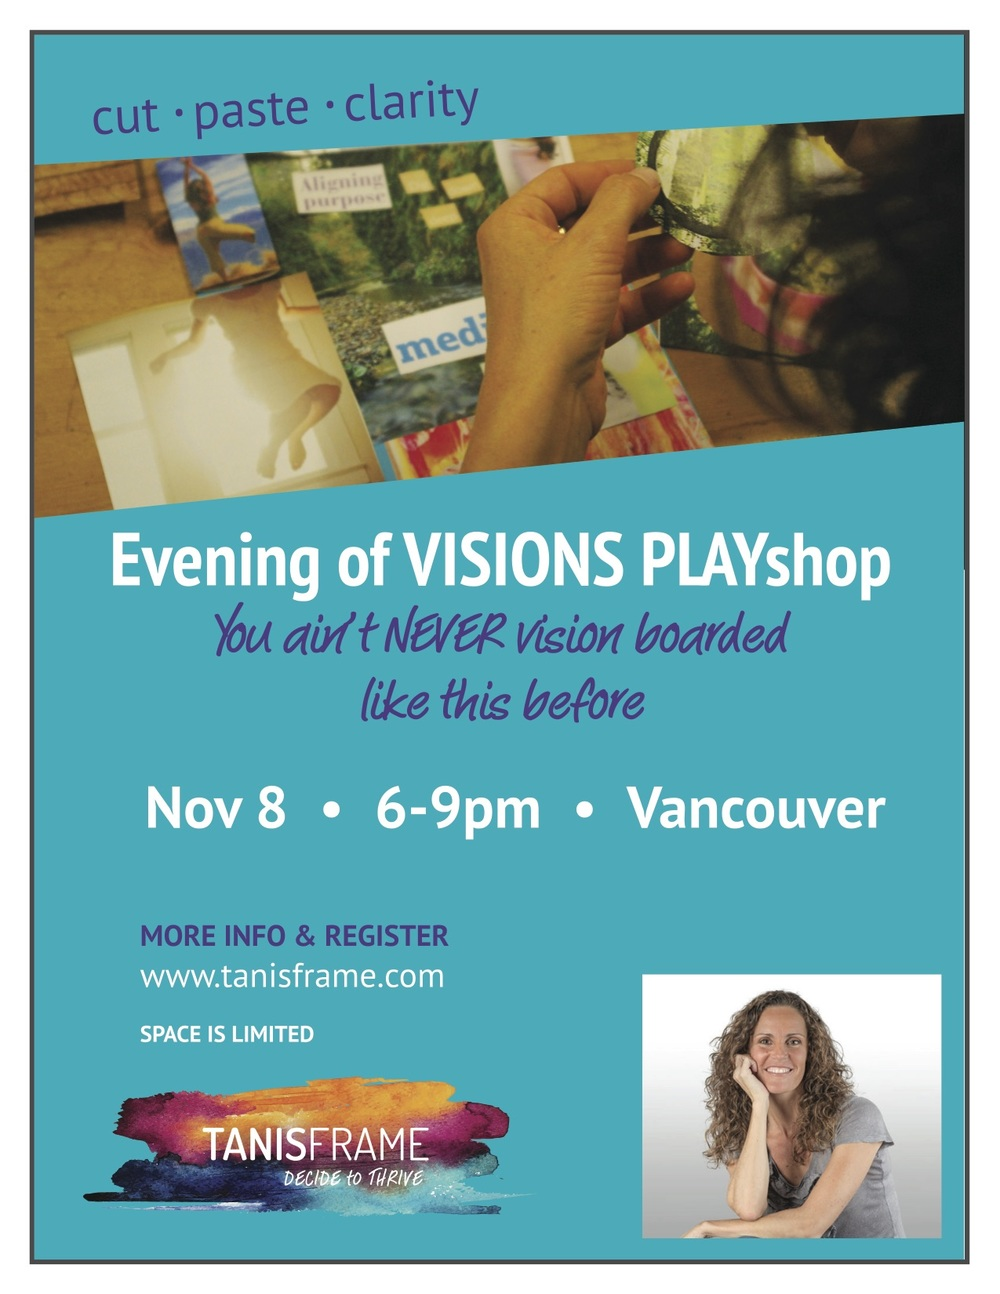 """Create a life you love with the science and art of vision boarding. Sunday November 8th Join us! CLARITY awaits! """"I came away from the PLAYshop feeling inspired uplifted and ready embody my vision for 2015 with crystal clear interiors."""" - Sharon Tron """"I just wanted to say thank you. I had so much fun during the PLAYshop itself but its ongoing impact on my life is what has really impressed me."""" - Erin Whalen To register, go to http://tanisframe.com/programs/evening-of-visions-playshop/ Cost: $67, all supplies, refreshments, plus take home Toolkit included."""